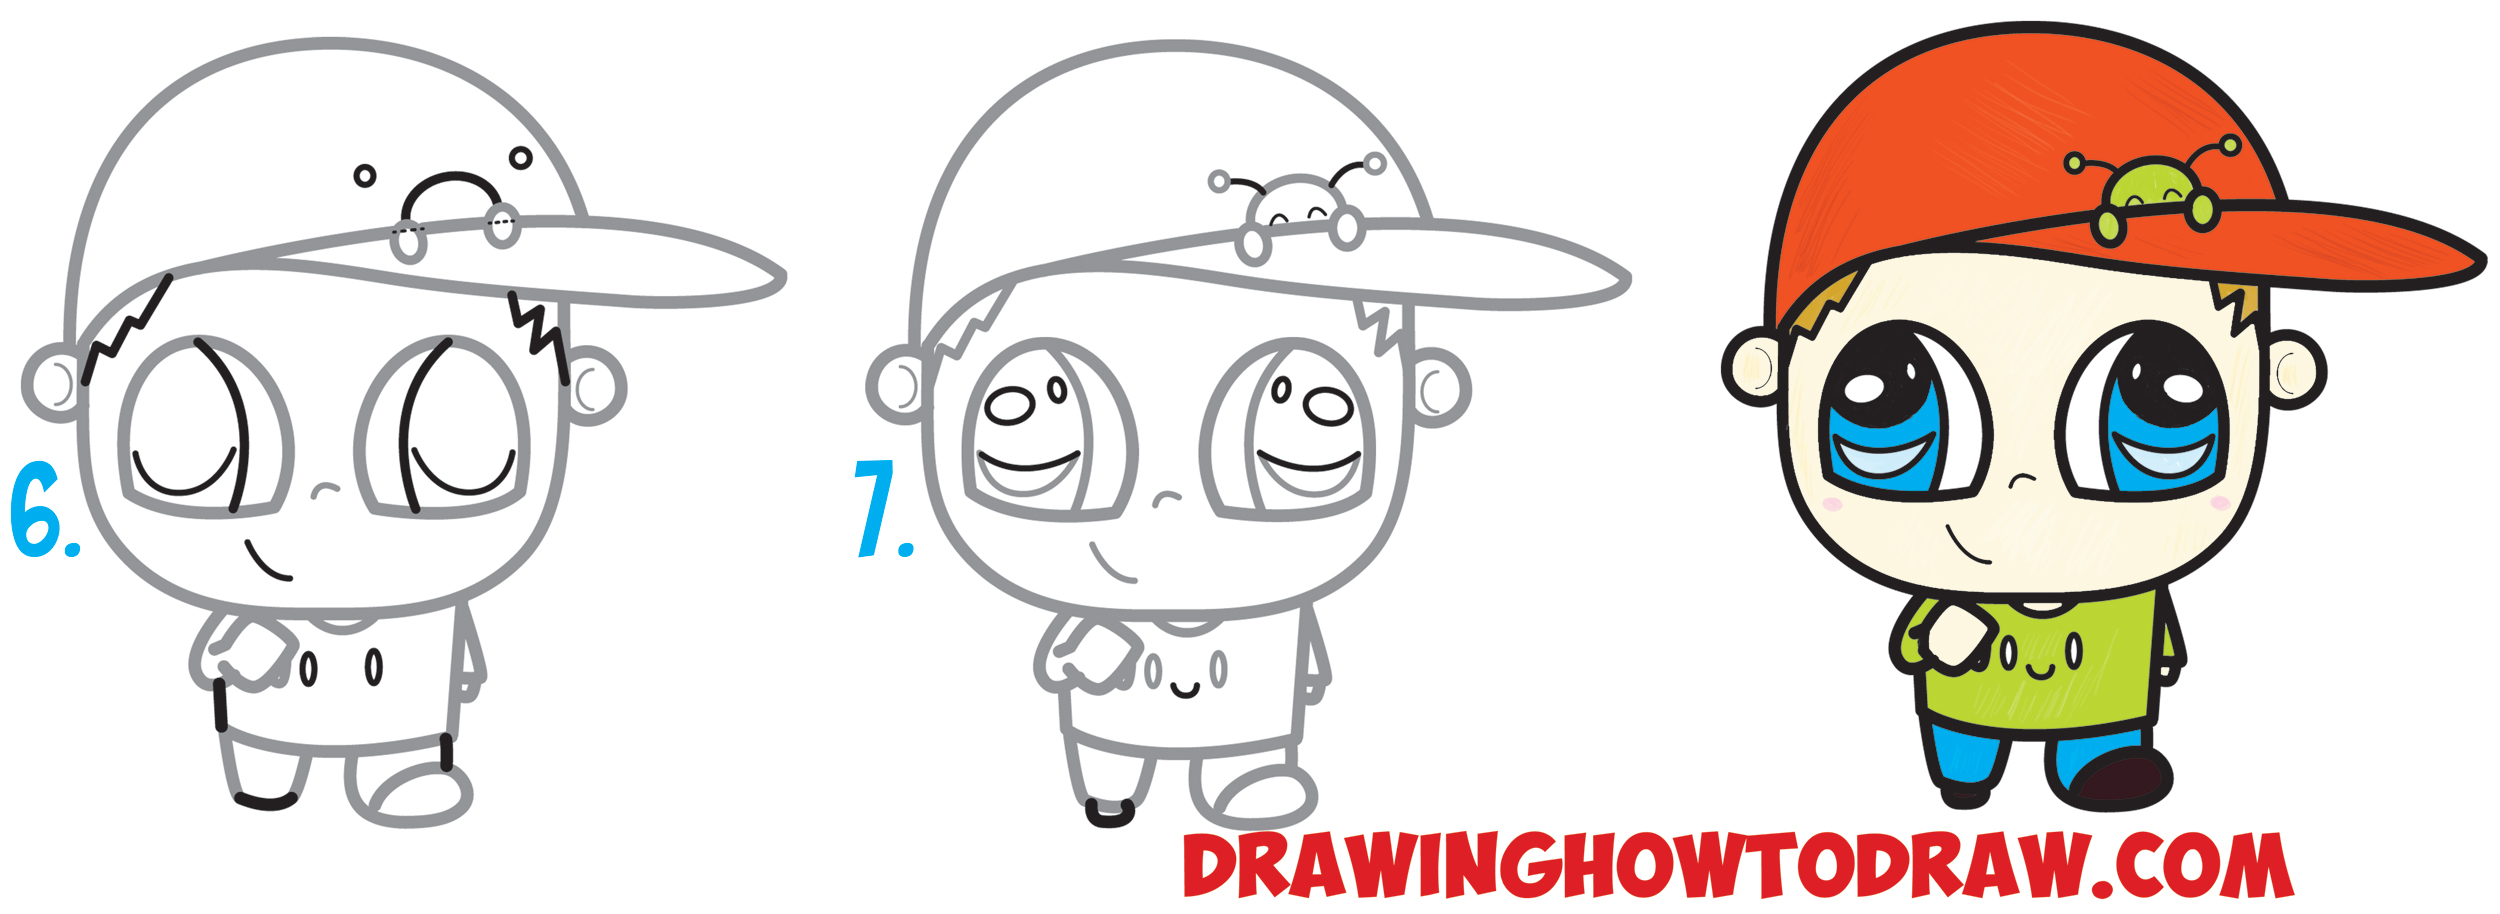 Learn How to Draw a Chibi Boy with a Cute Bug on His Baseball Hat Simple Steps Drawing Lesson for Children